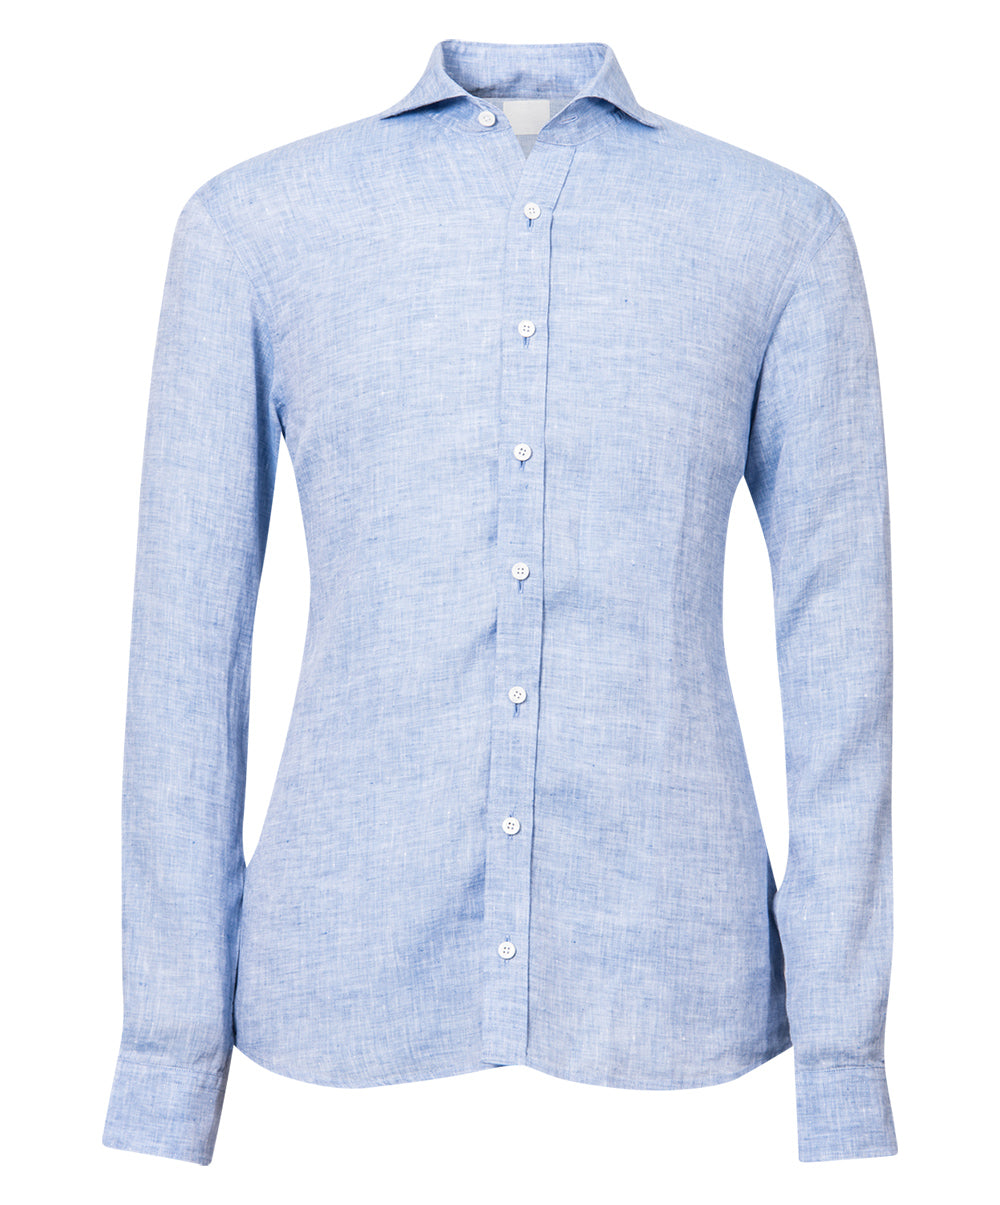 Herman Sky Blue Washed Effect Sport Shirt